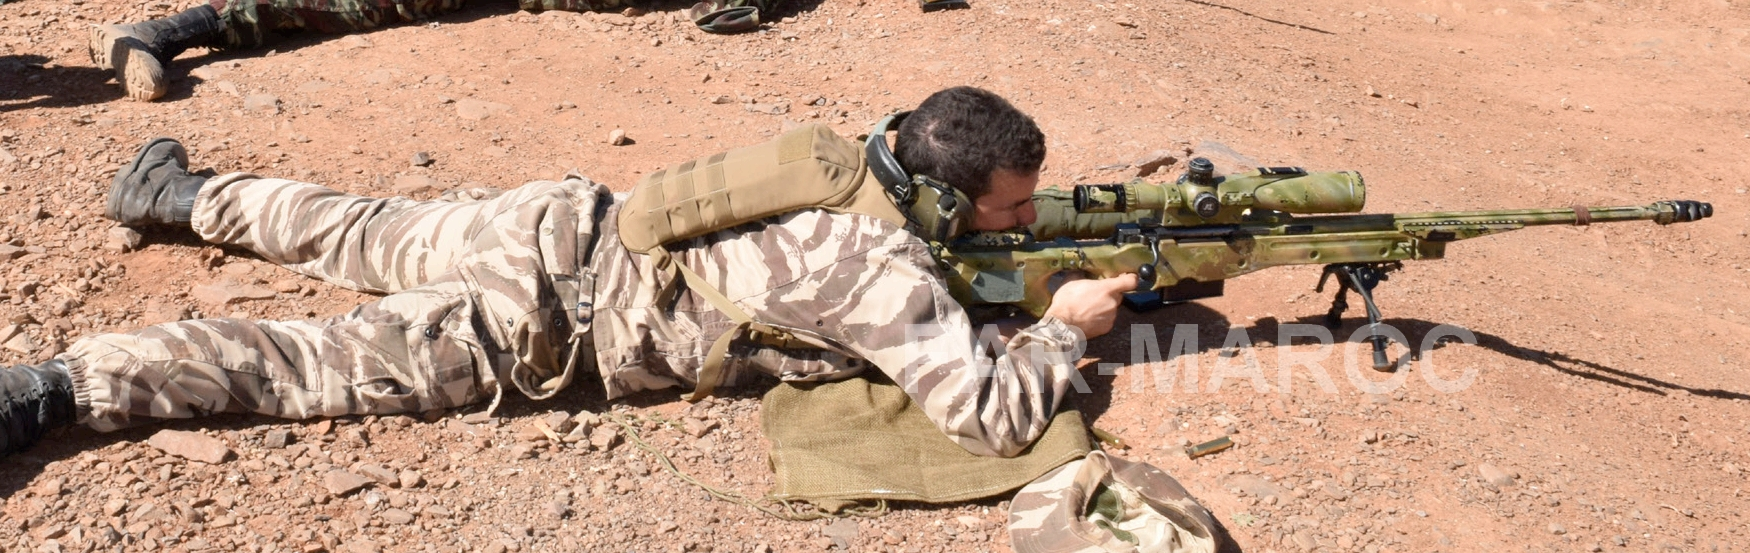 Armes d'Infanterie chez les FAR / Moroccan Small Arms Inventory - Page 8 49274804462_b8468f0399_o